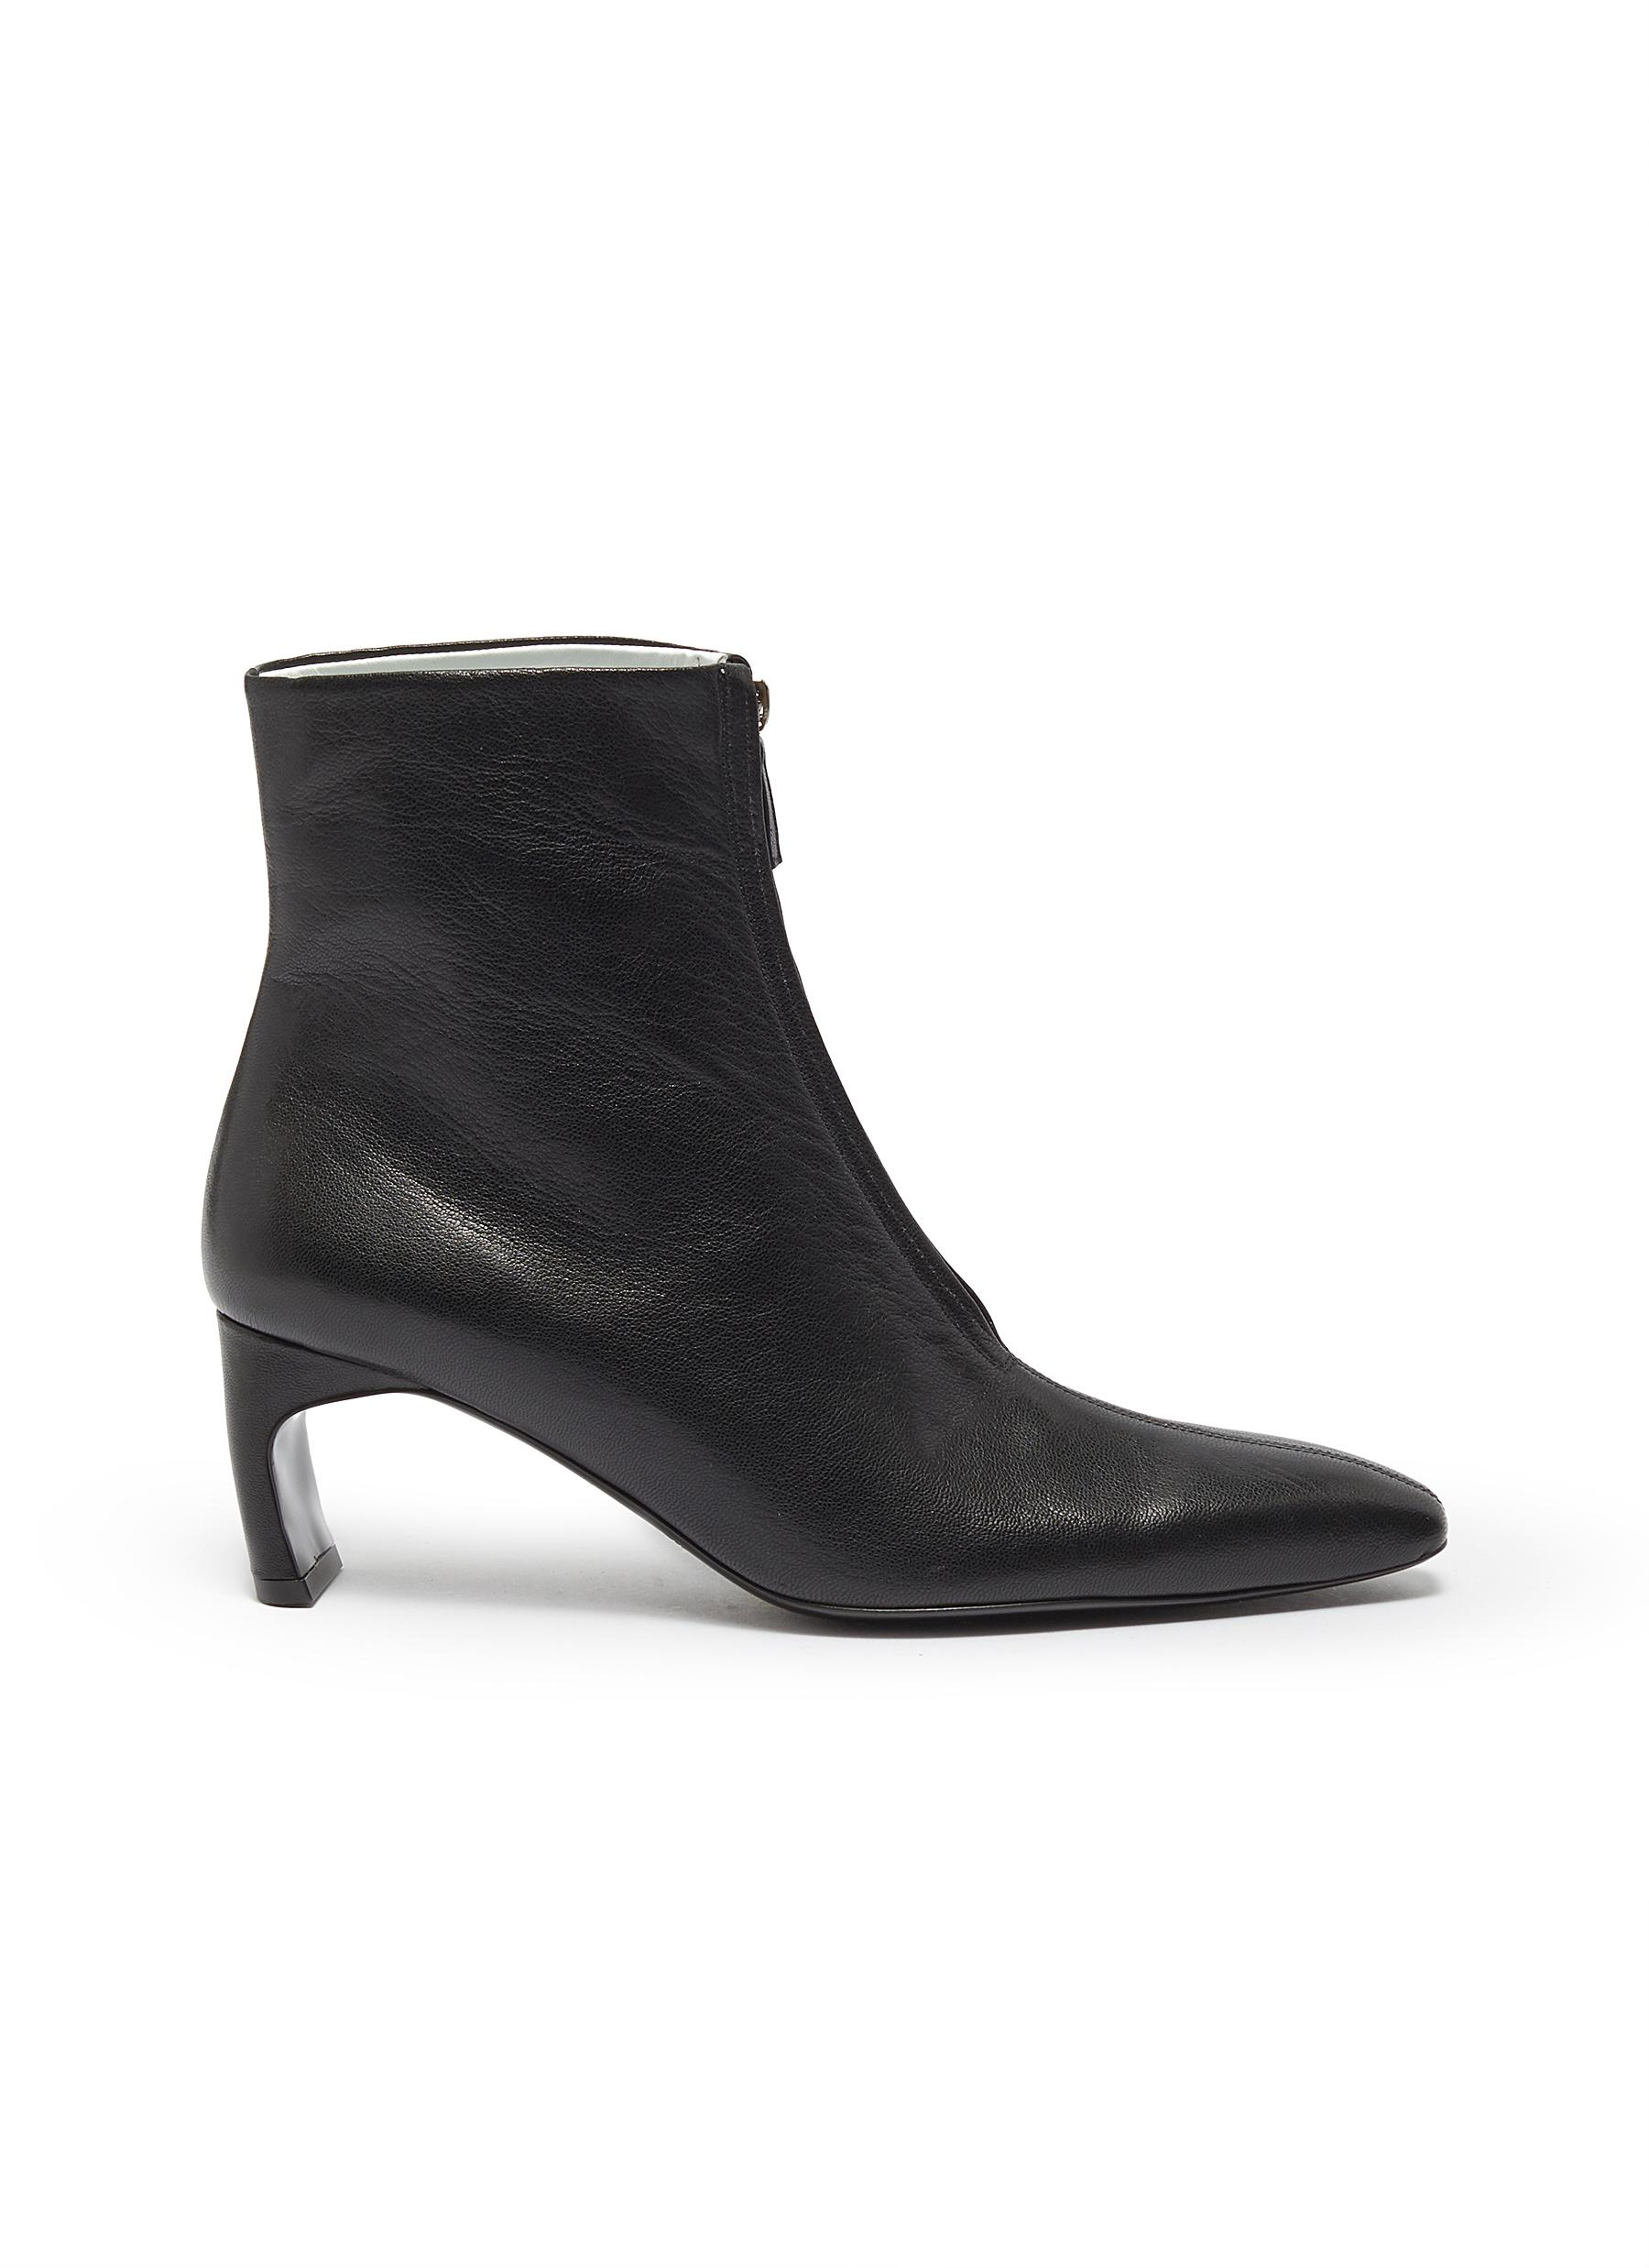 Zip front leather ankle boots by Rosetta Getty